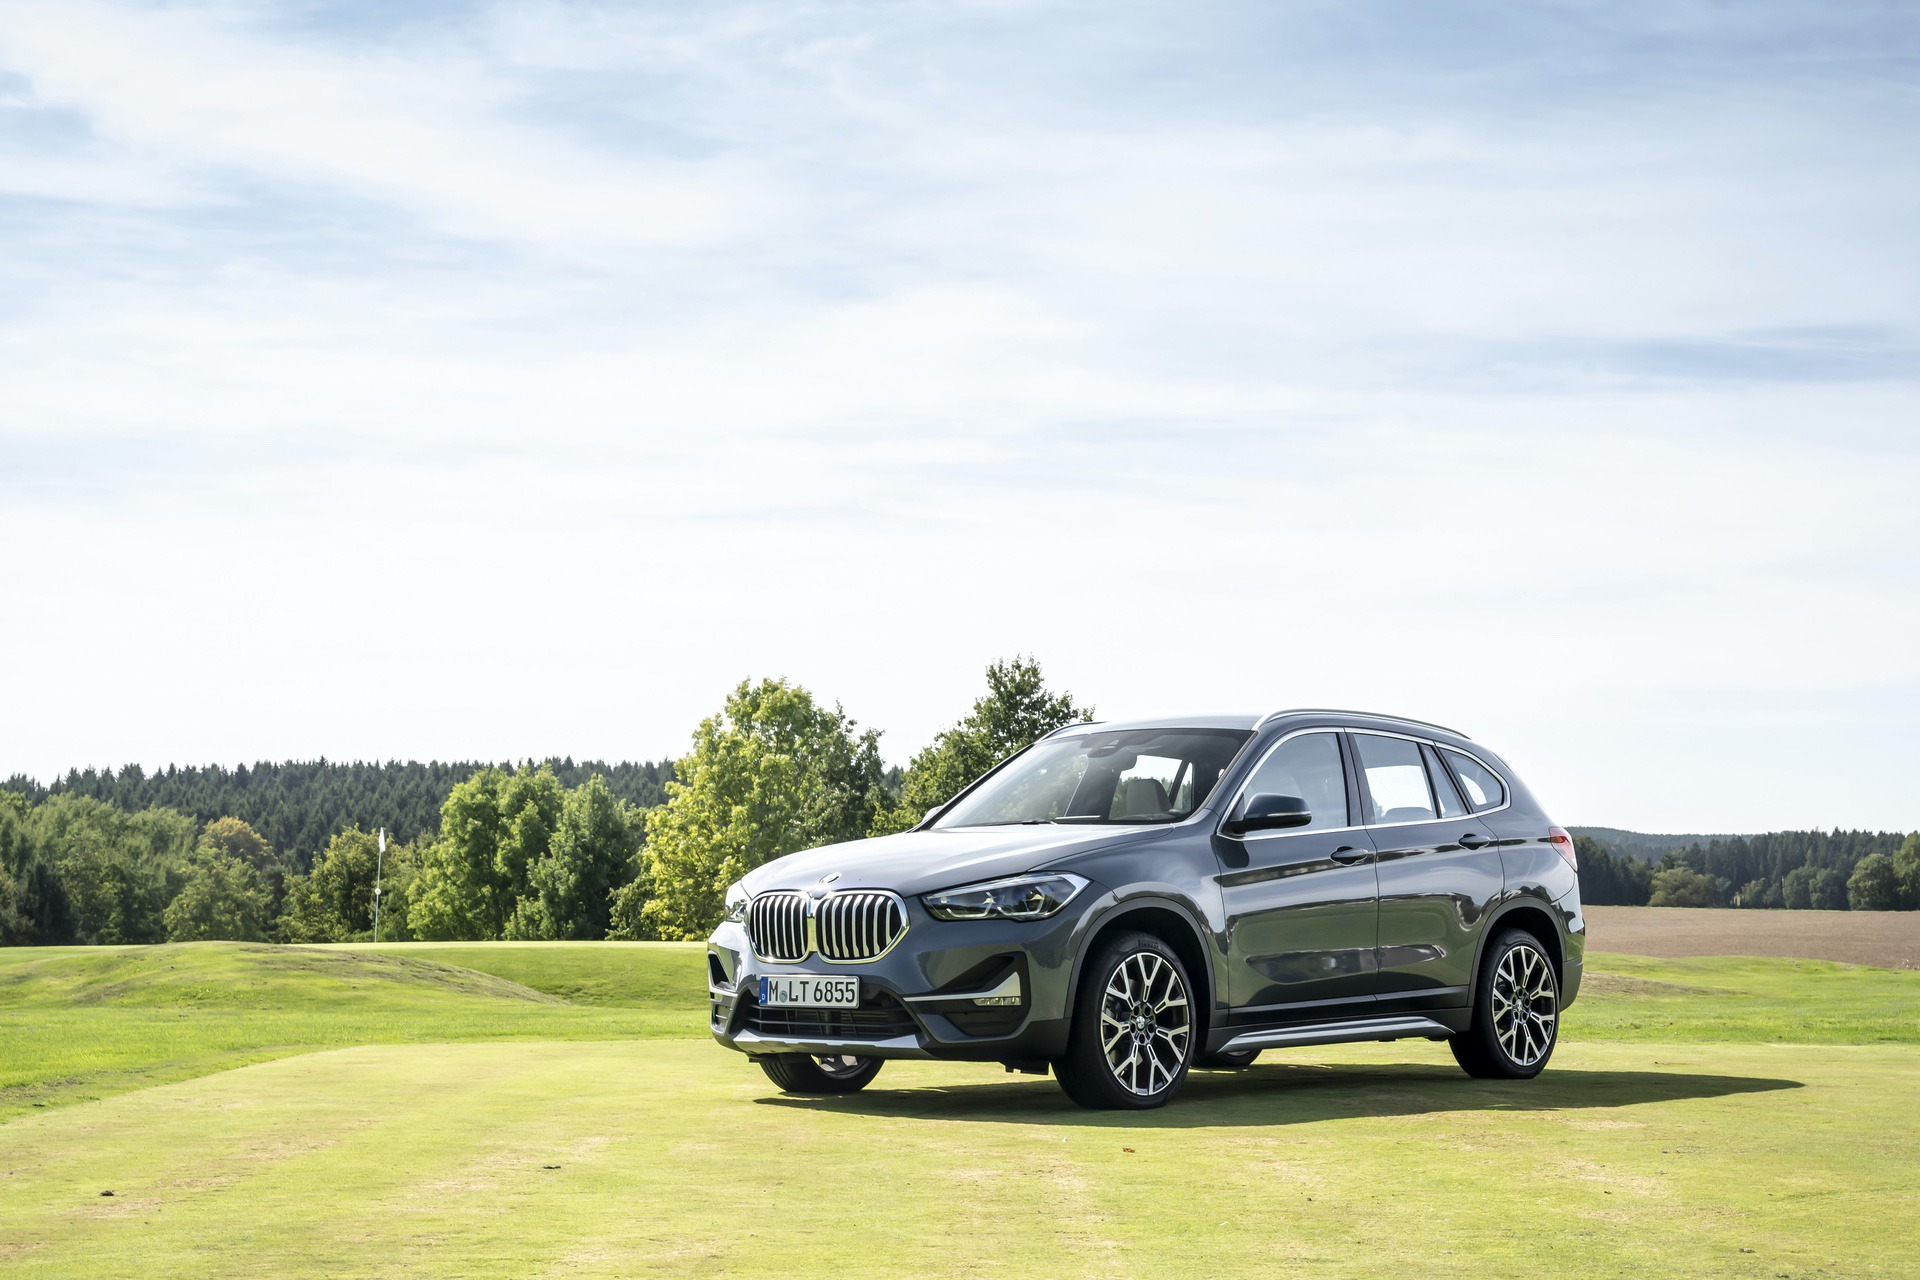 TEST DRIVE: 2019 BMW X1 Facelift - Improving The ...